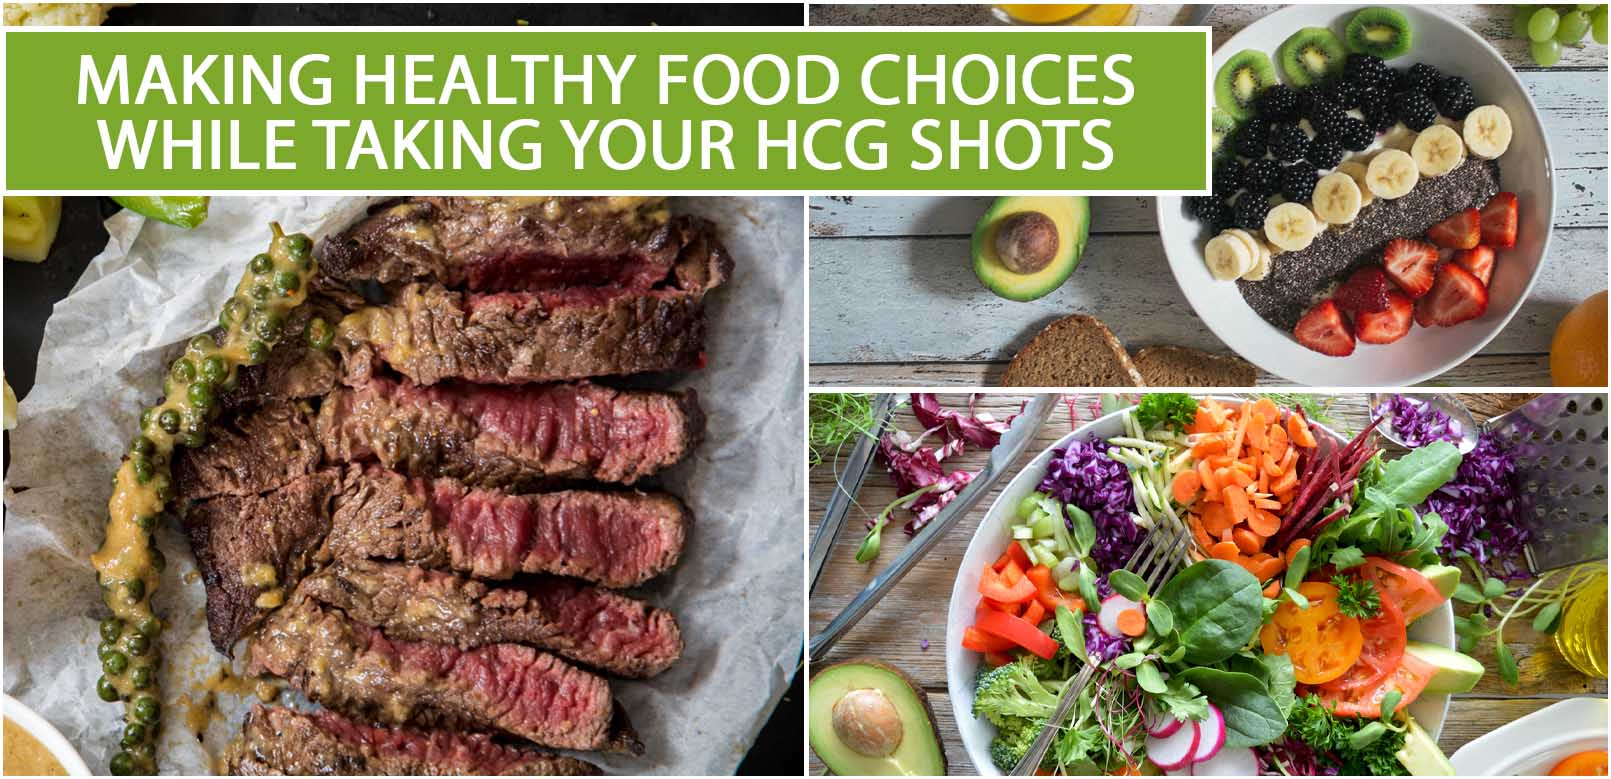 MAKING HEALTHY FOOD CHOICES WHILE TAKING YOUR HCG SHOTS